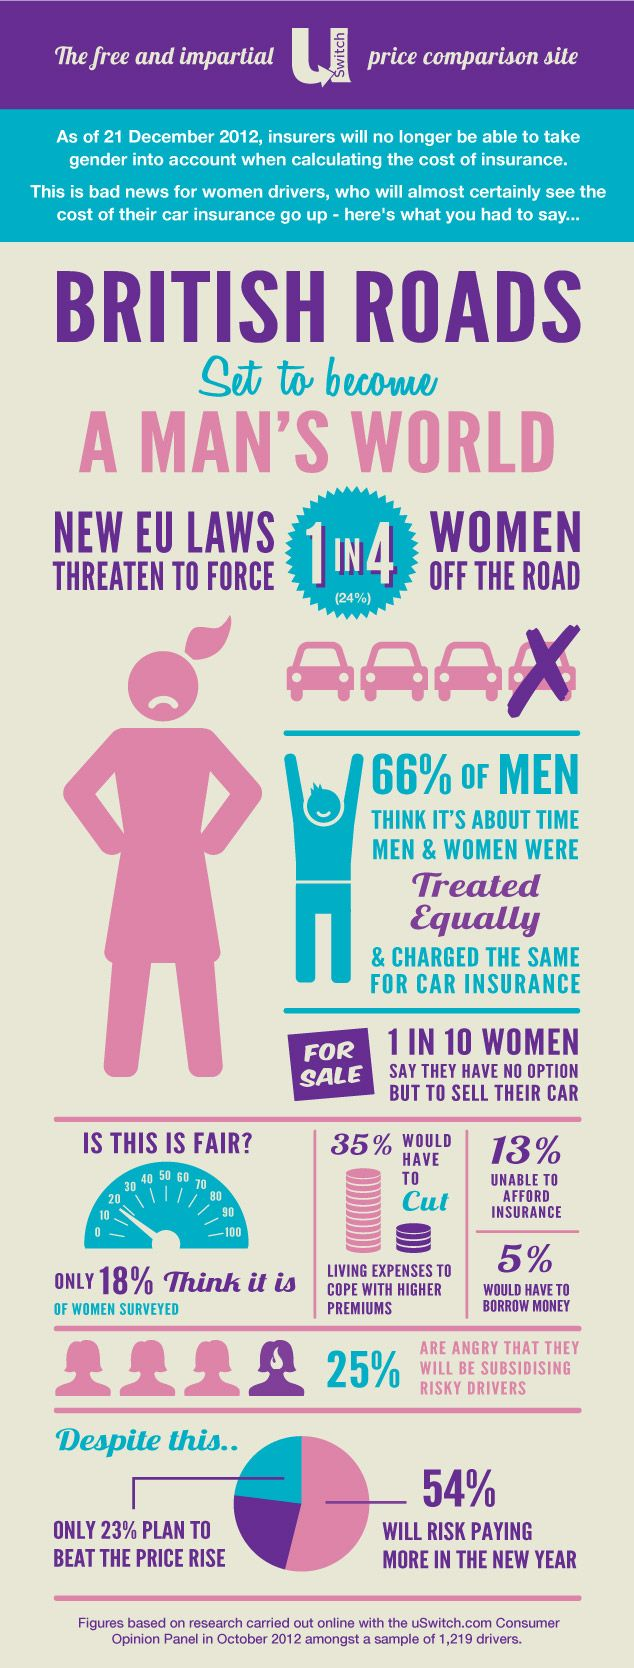 New EU insurance law could force one in four women off the